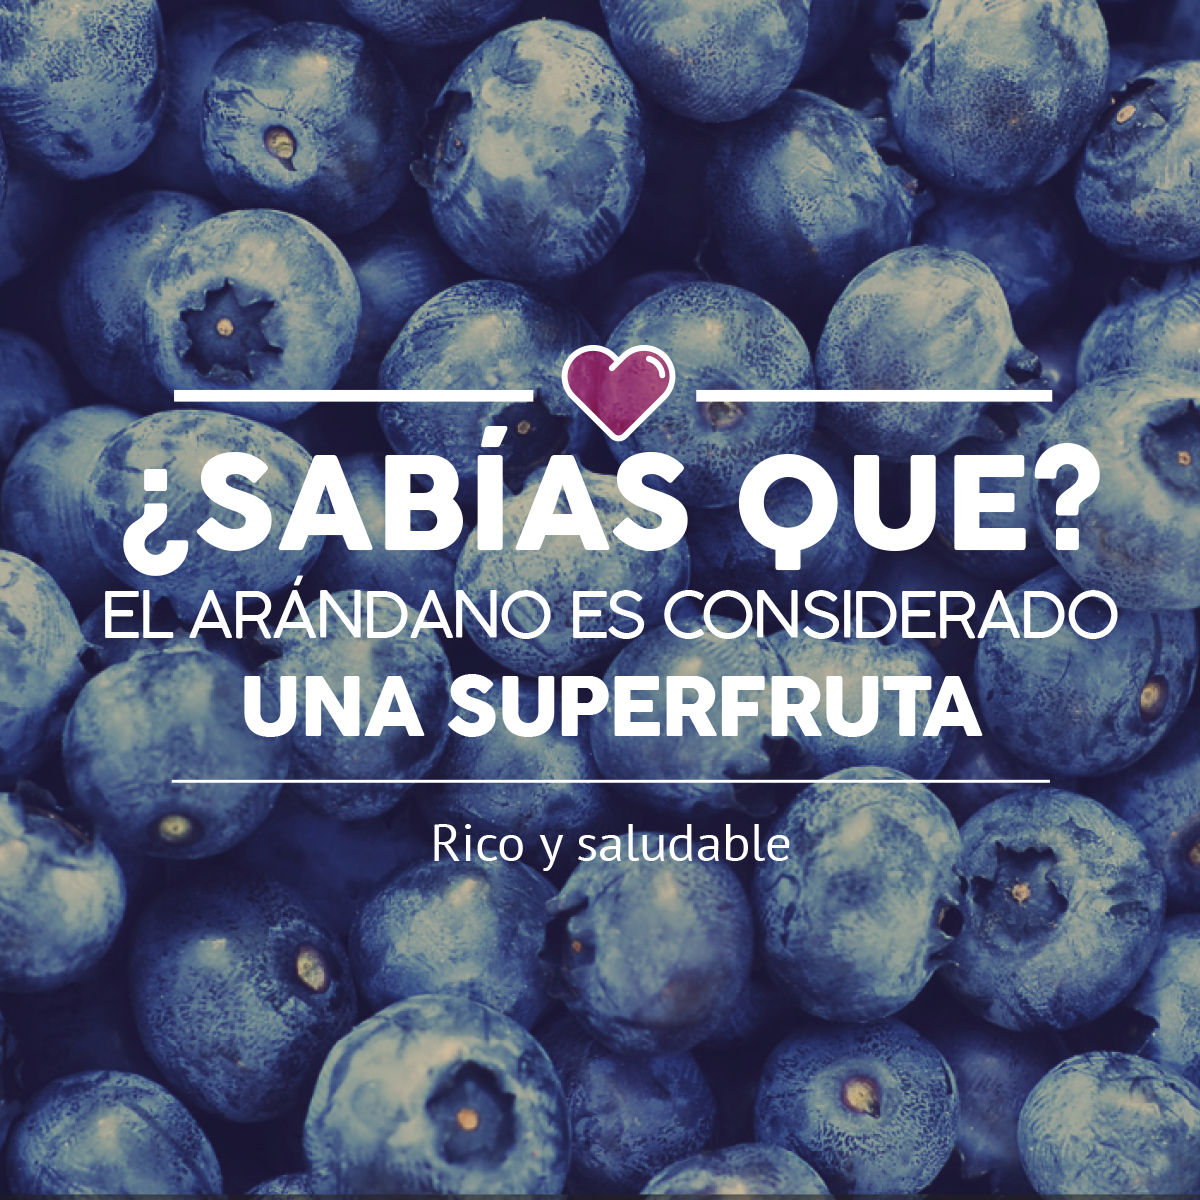 Superfruta